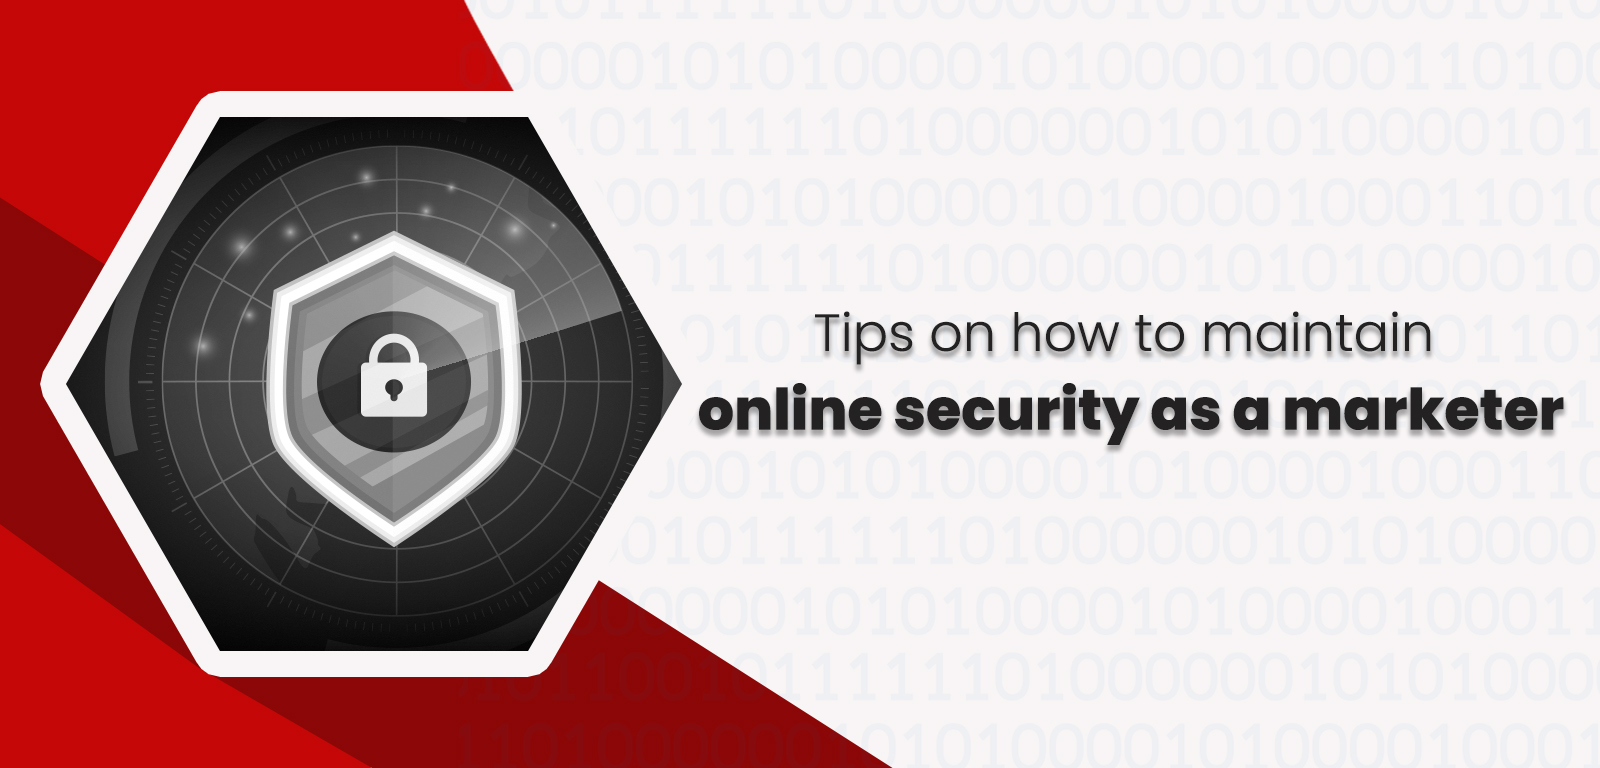 Tips on how to maintain online security as a marketer